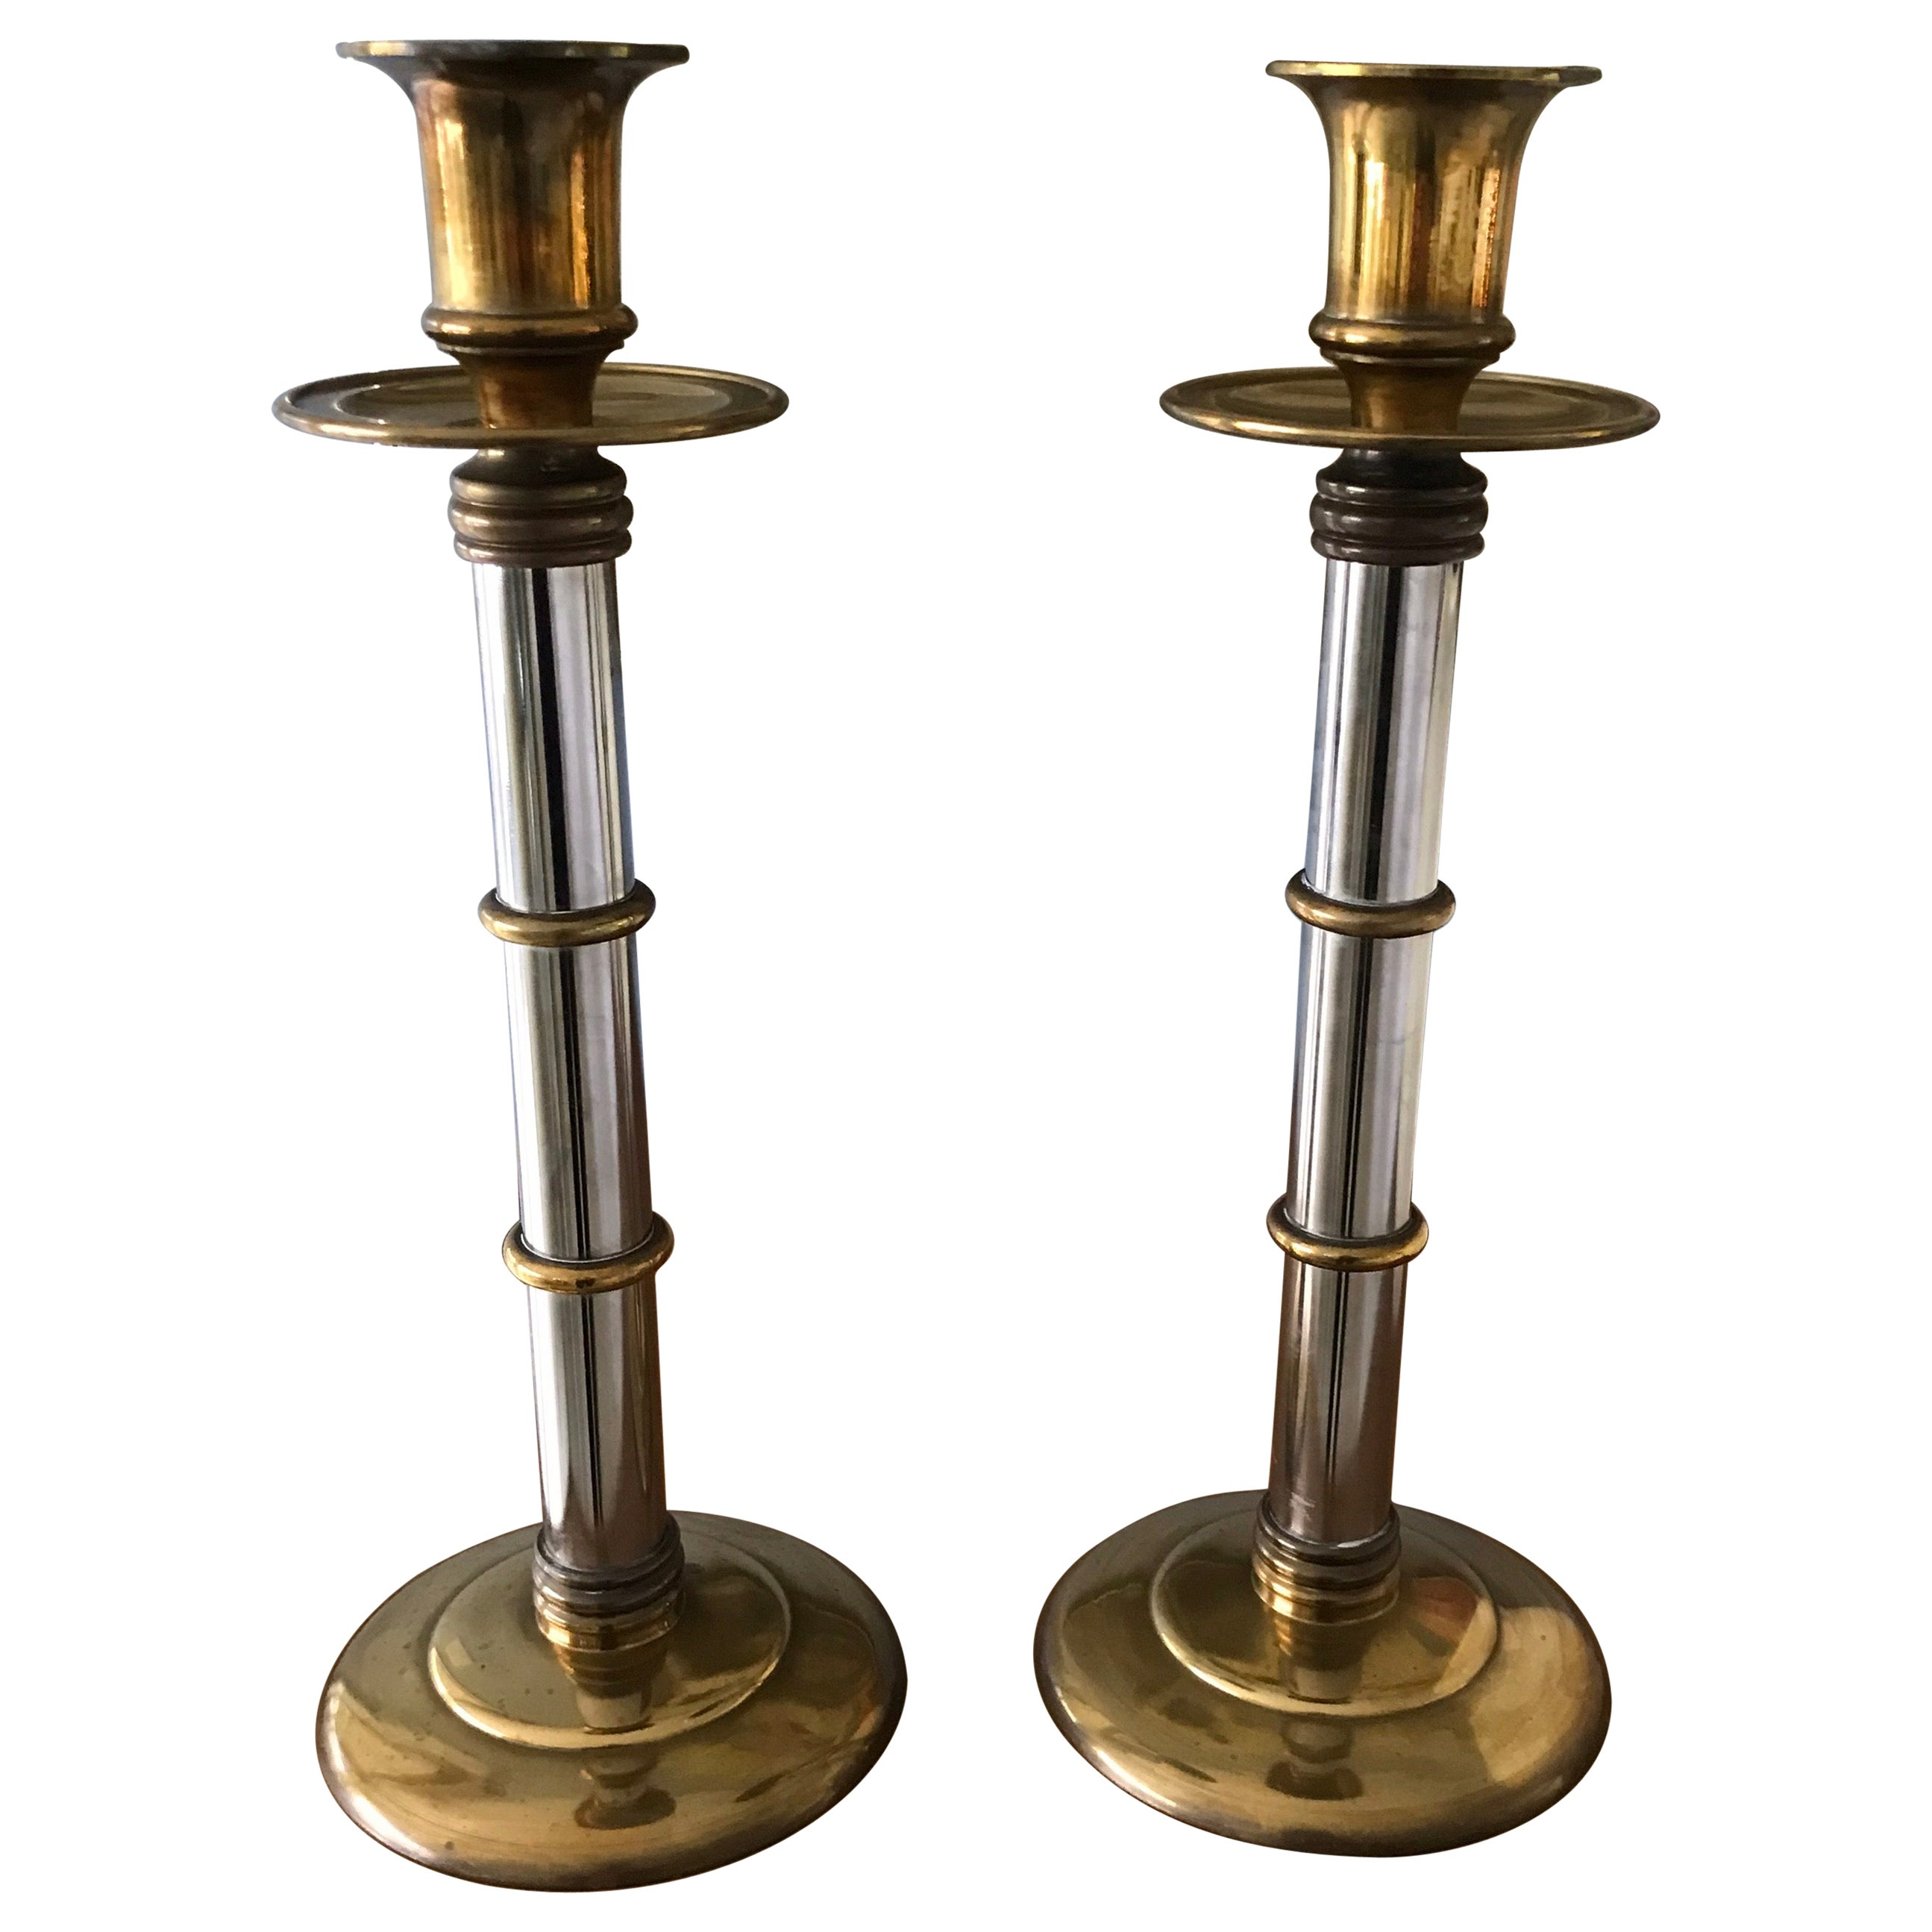 Maitland Smith Brass and Silver Tall Candlesticks